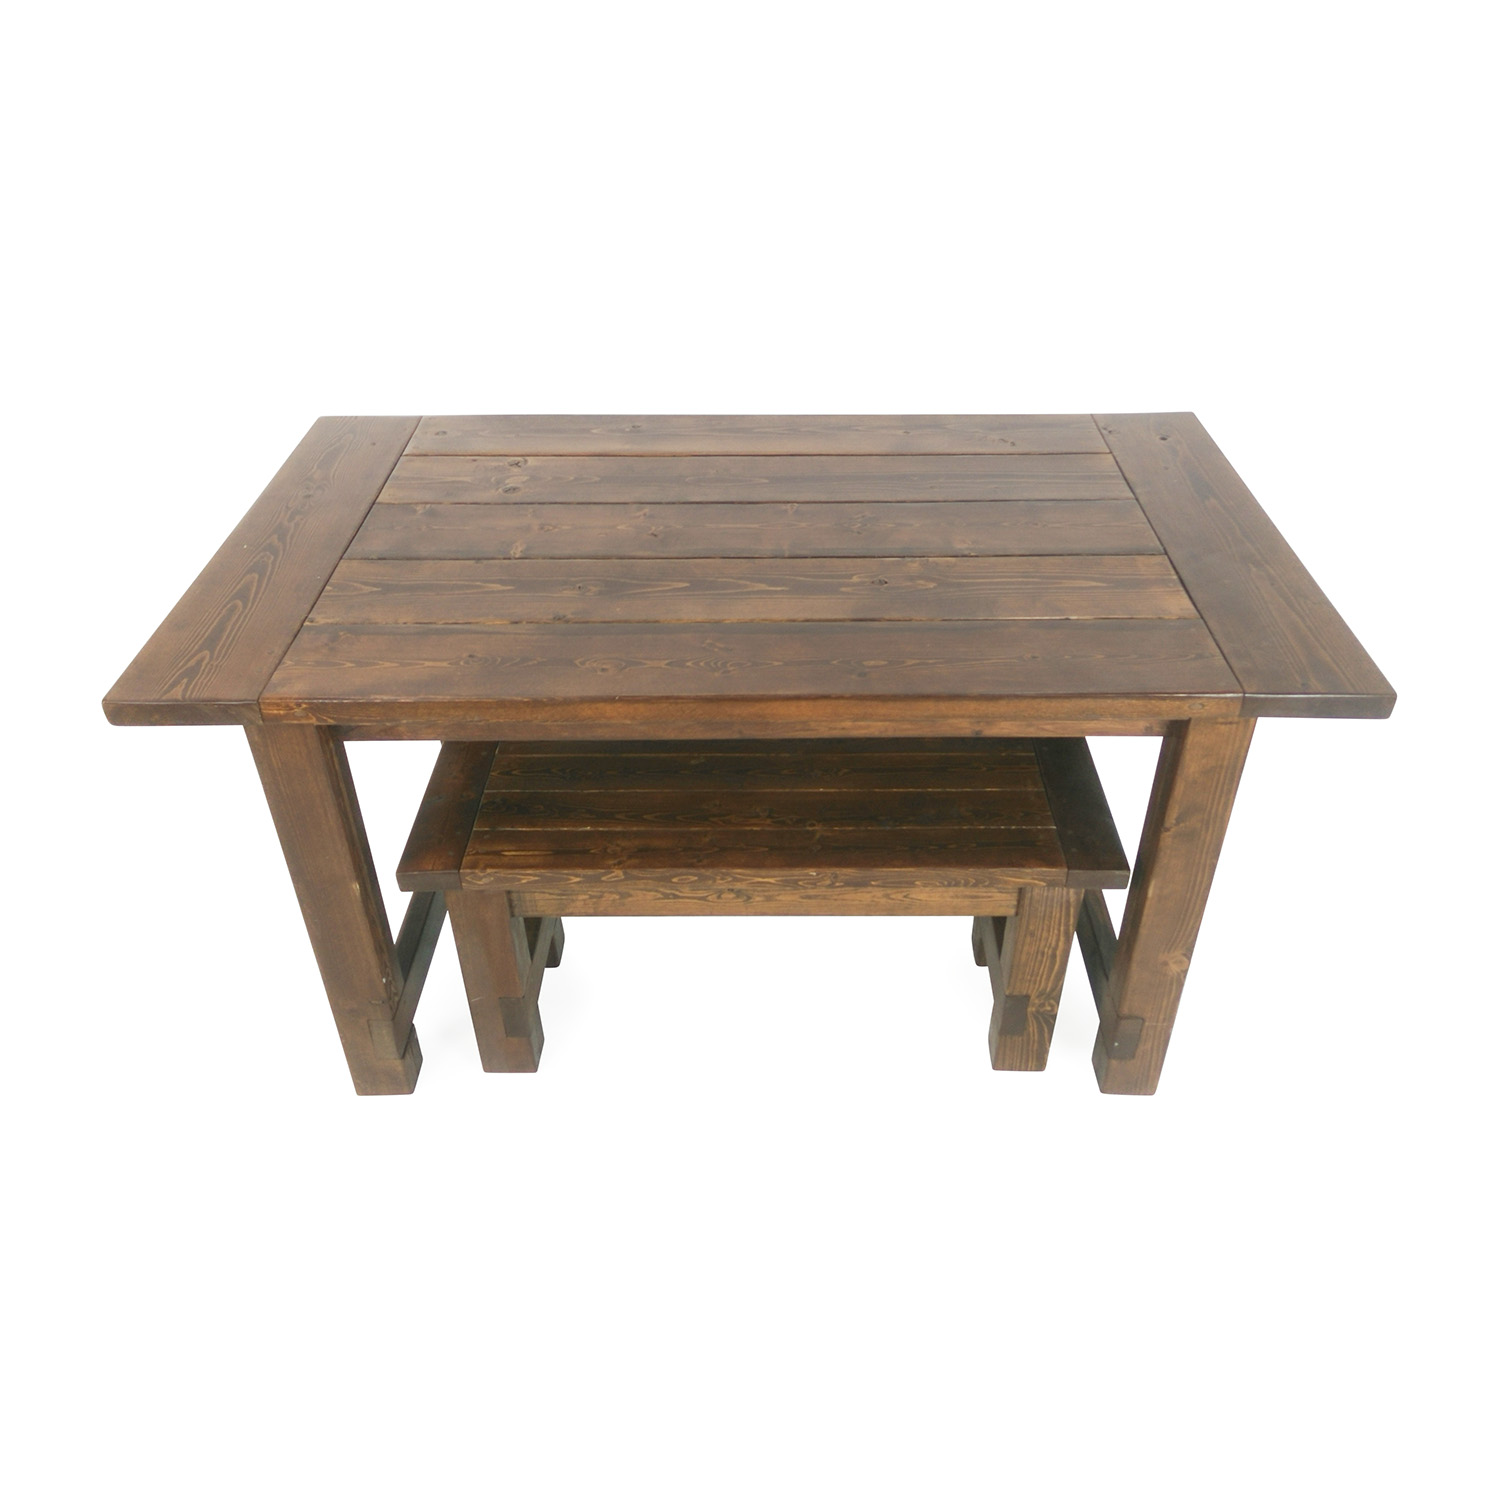 78 Off North Carolina Farmhouse Farmhouse Table And